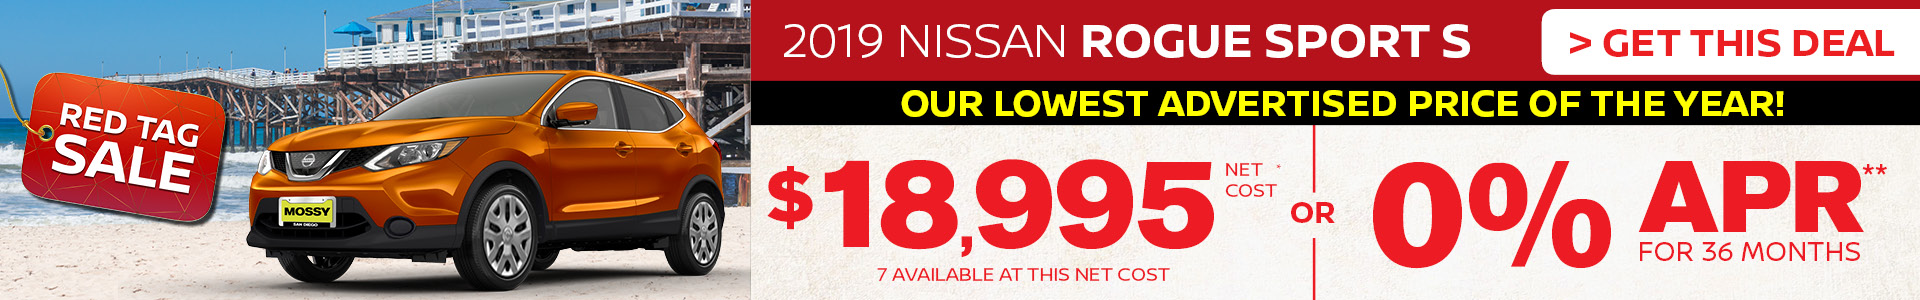 Mossy Nissan - Nissan Rogue Sport $19,995 Purchase